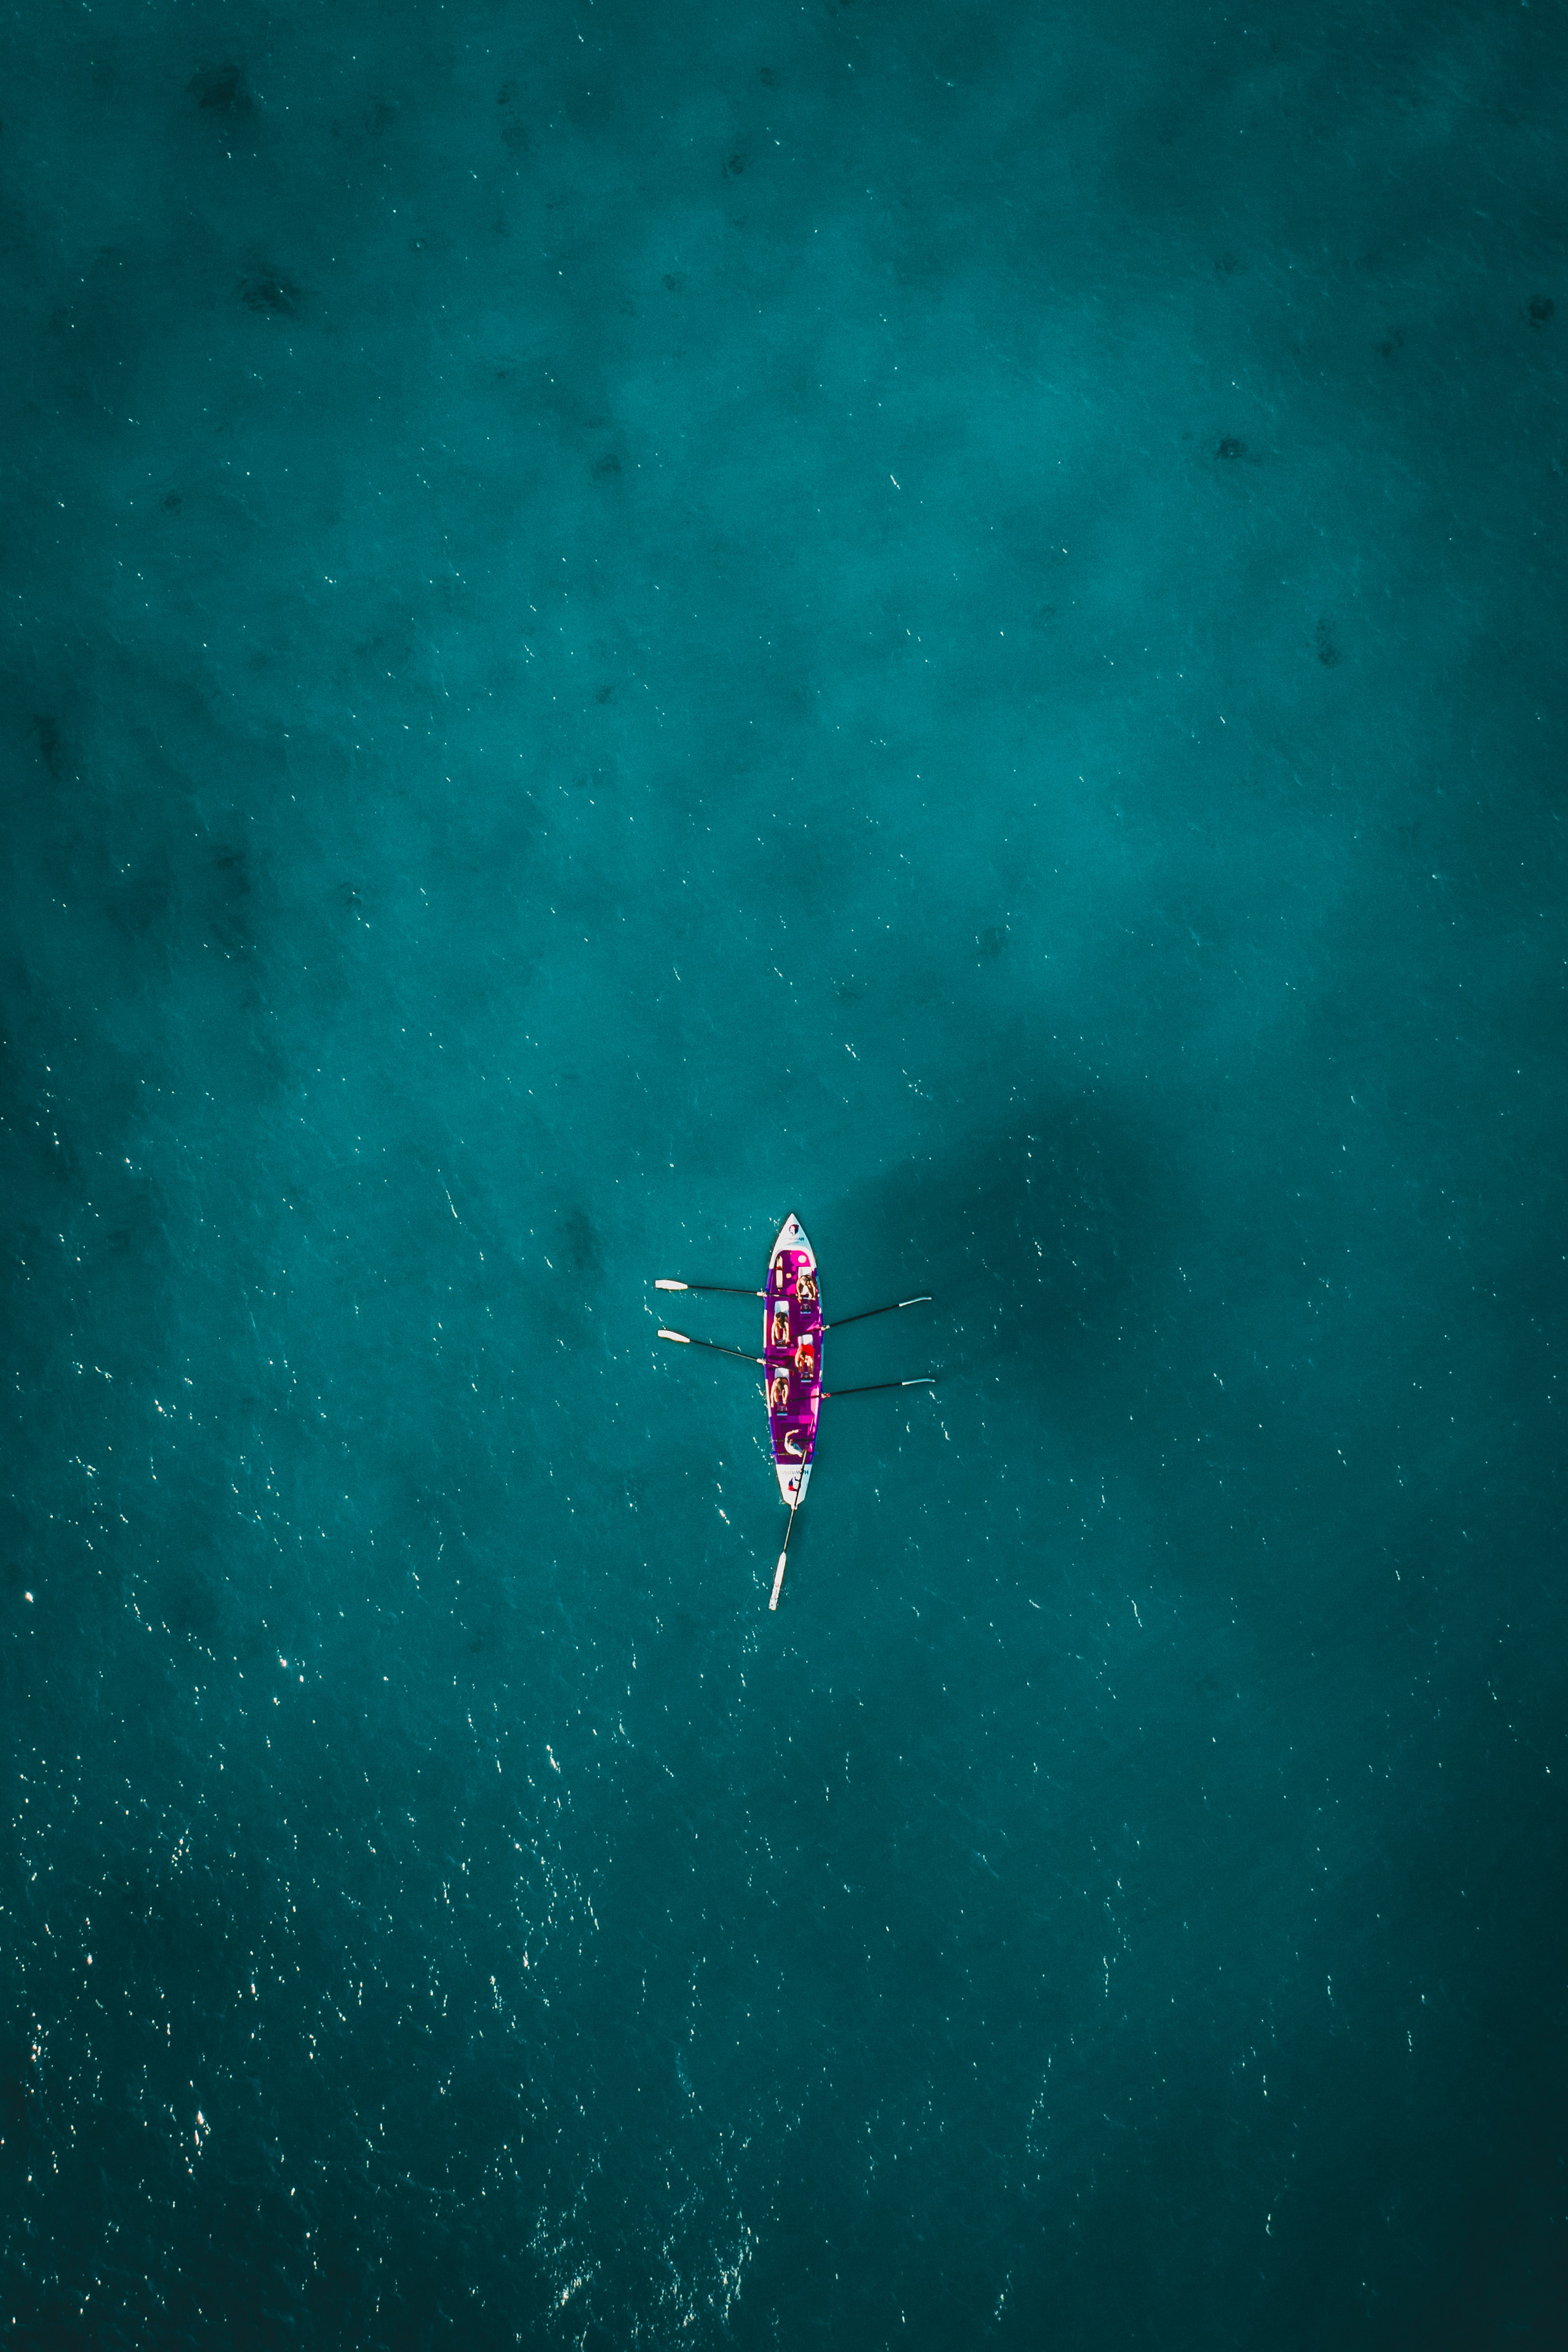 top-view photography of two persons kayaking on water